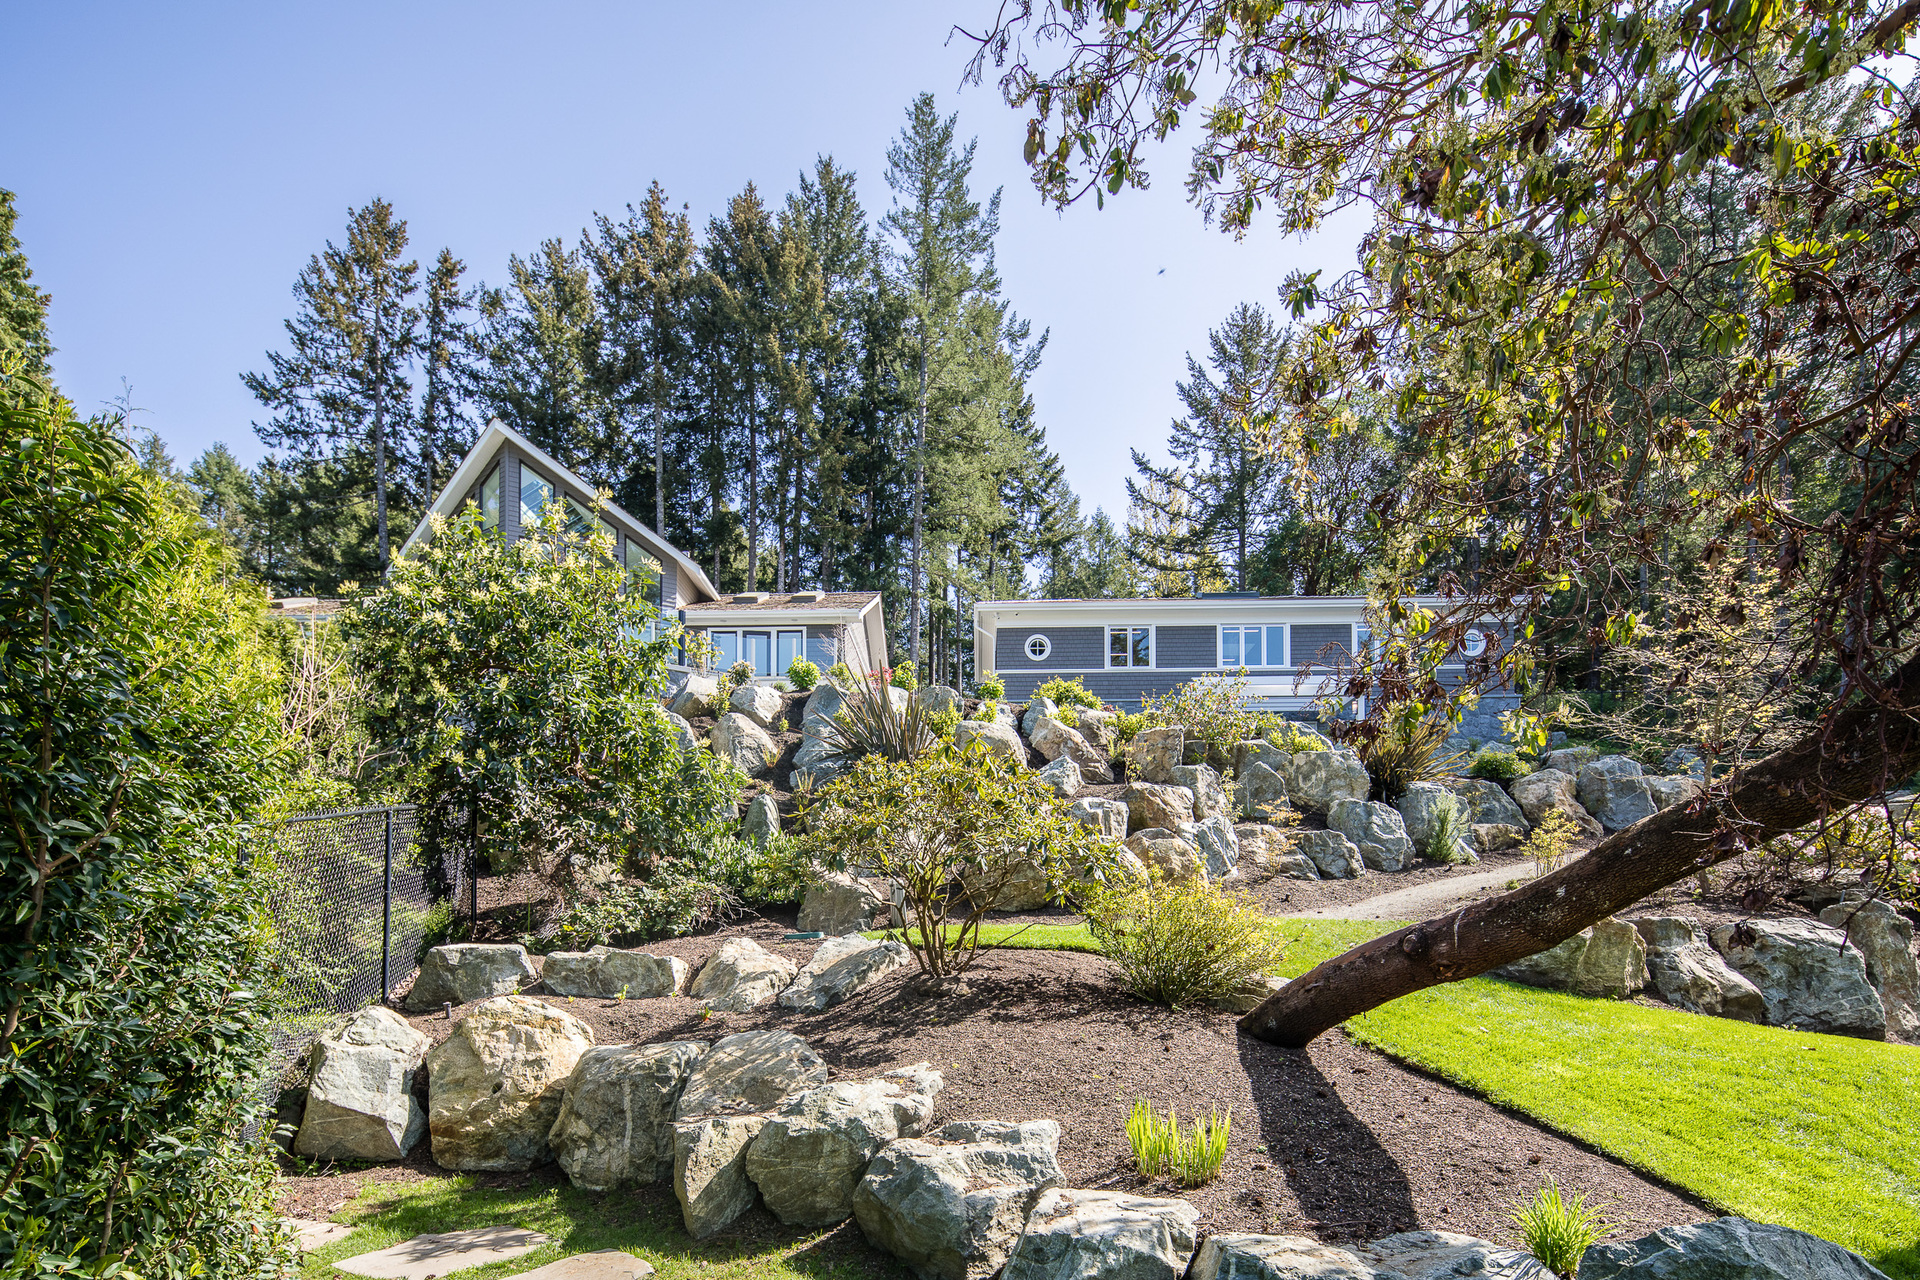 Grounds at 518 Lands End Road, Lands End, North Saanich